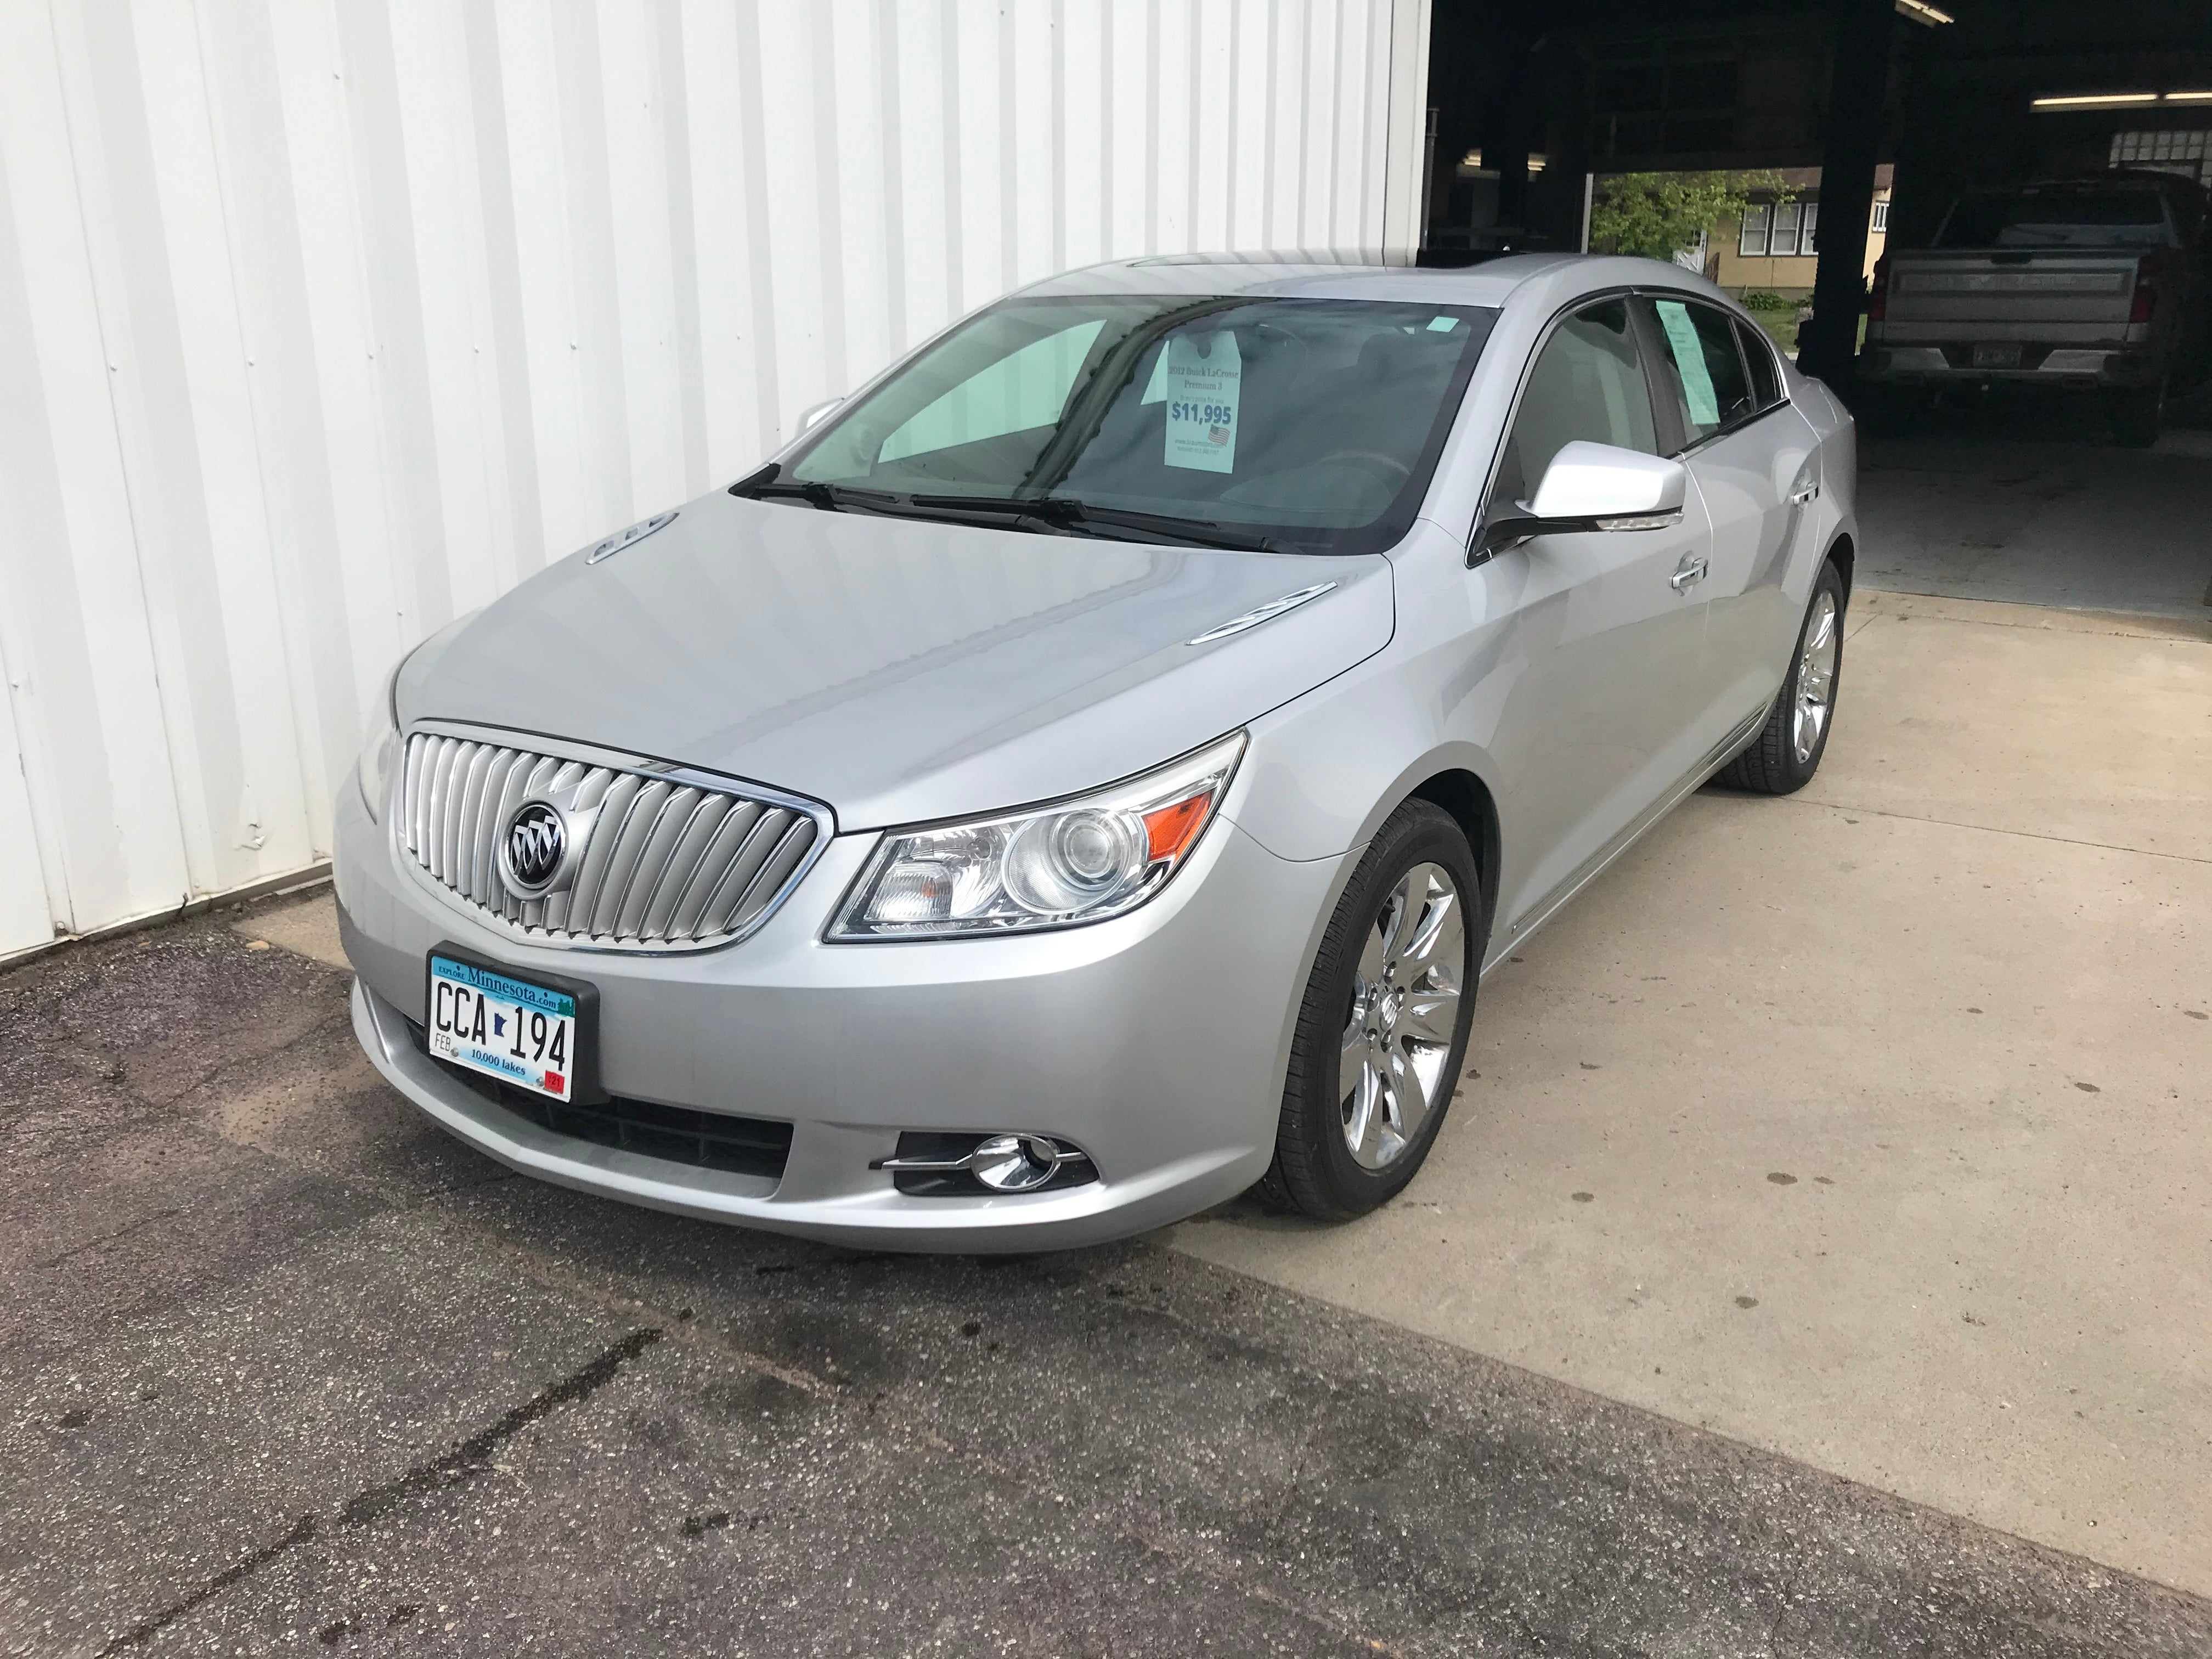 Used 2012 Buick LaCrosse Premium 3 with VIN 1G4GH5E39CF362848 for sale in Arlington, Minnesota